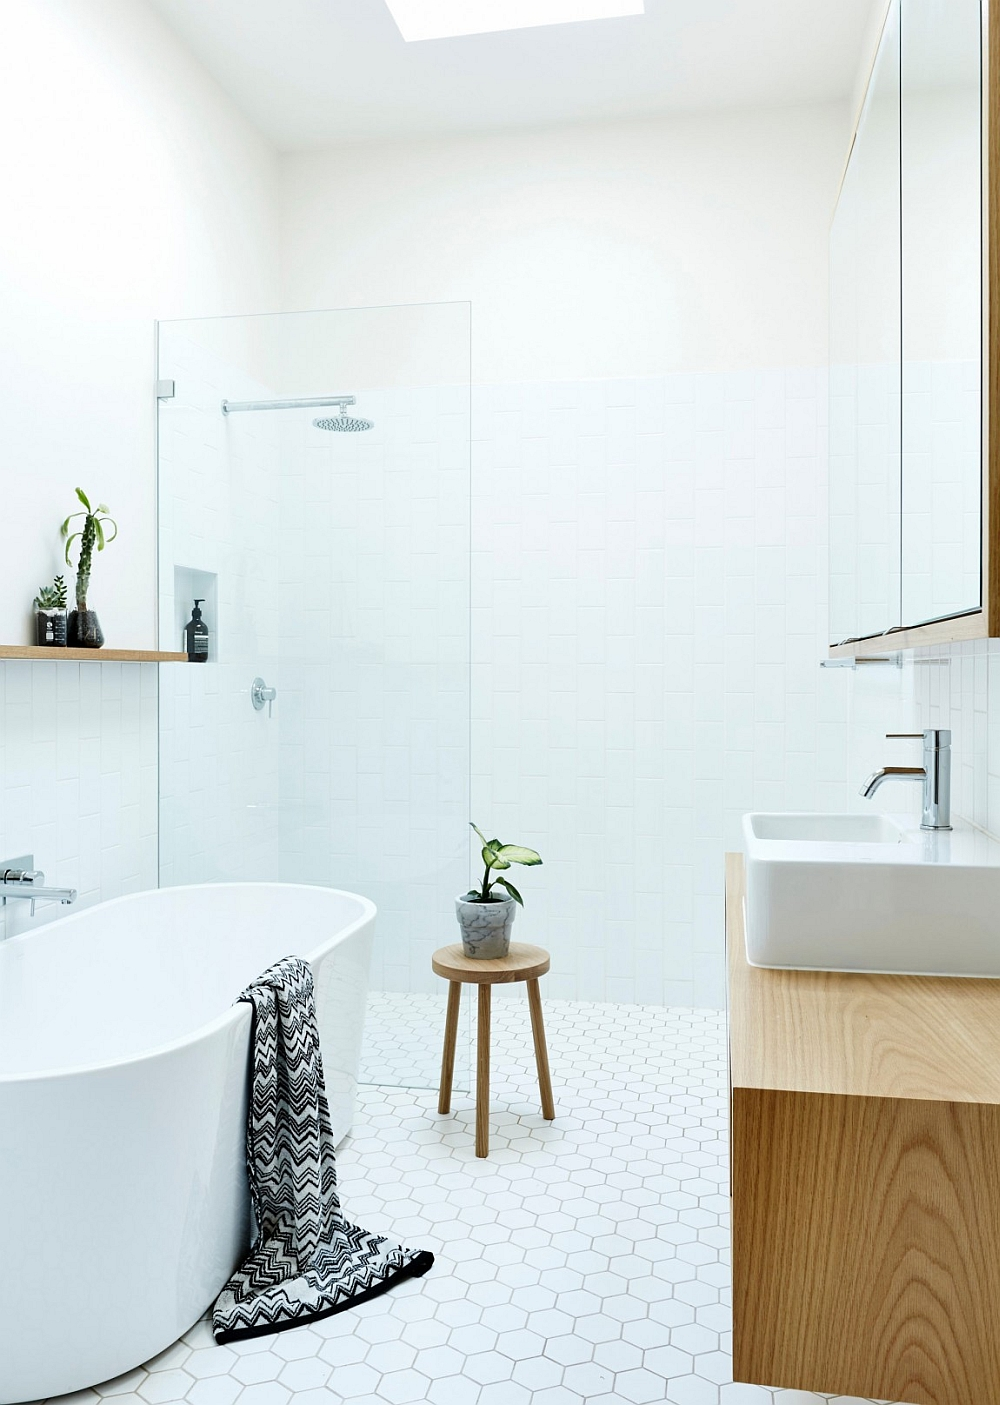 Luxurious bathroom in white with standalone bathtub